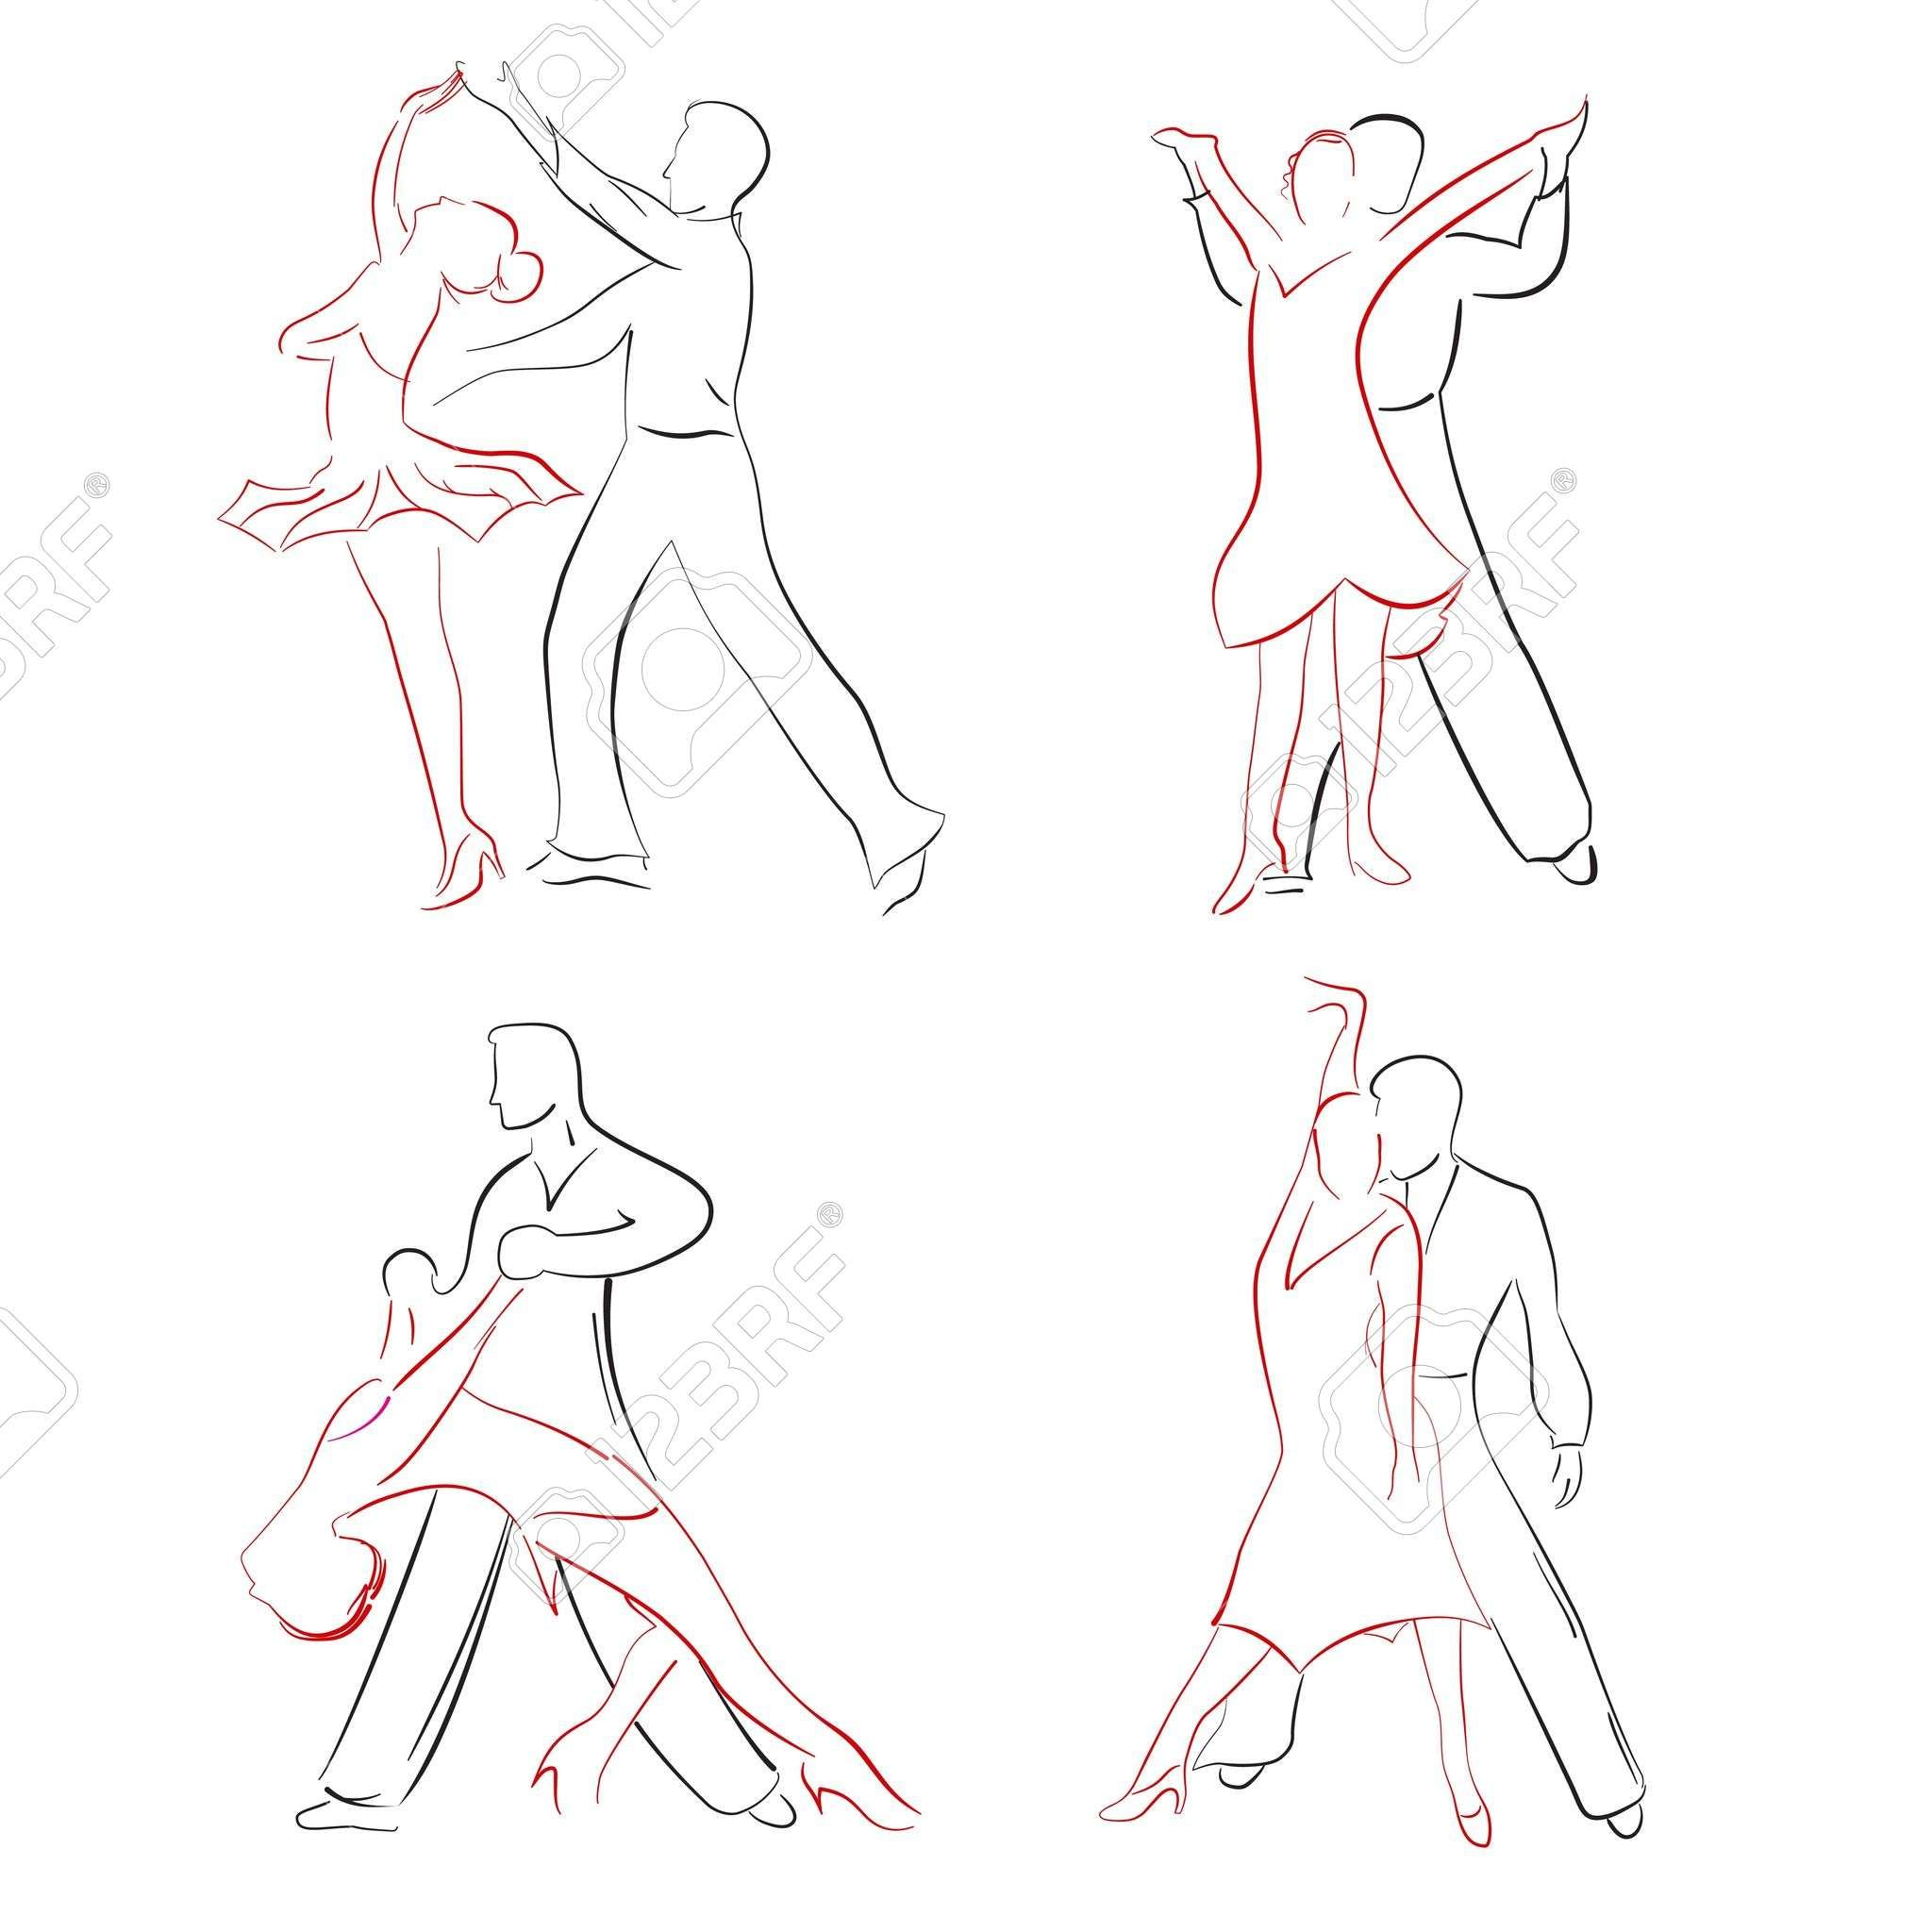 how to draw someone dancing